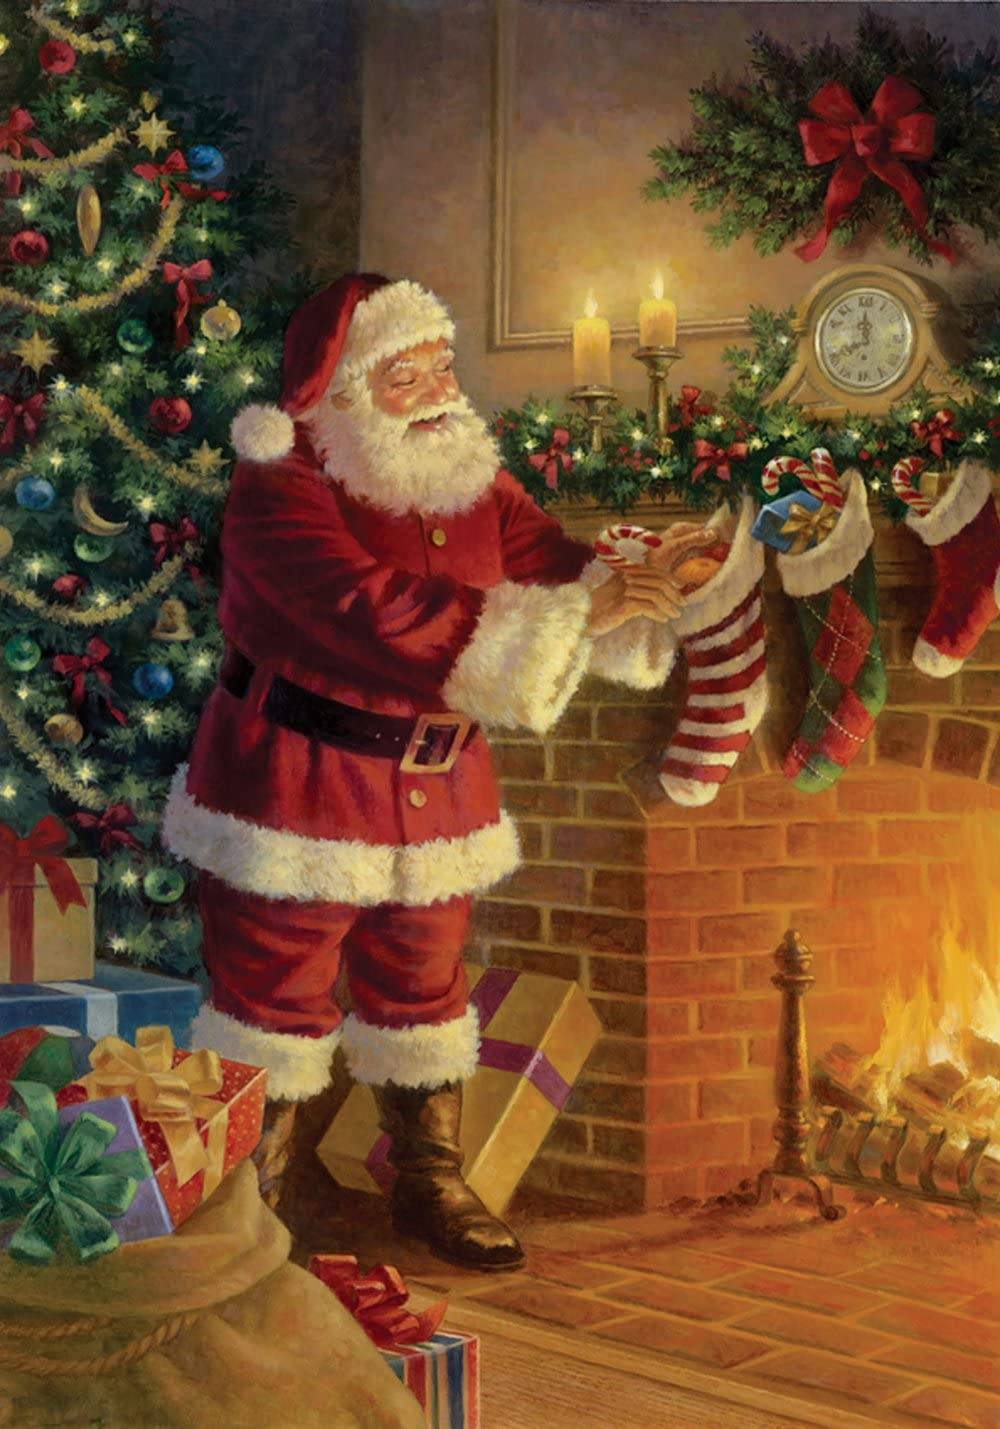 Toland Home Garden Stocking Stuffer 28 x 40 Inch Decorative Christmas Tree Holiday Fireplace Gift Santa Claus House Flag - 109418